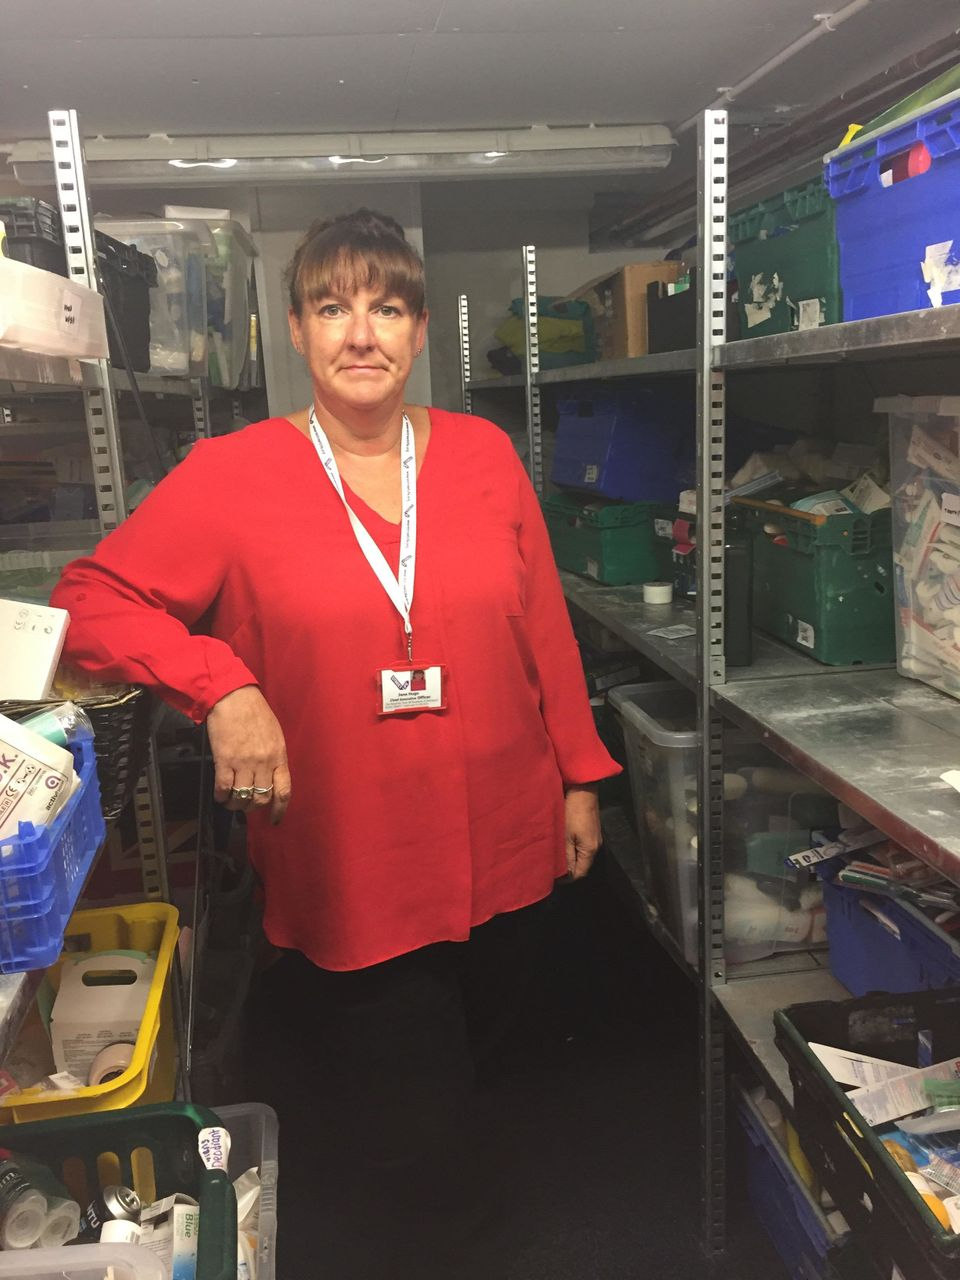 Jane Hugo of Streetlife in the charity's foodbank. Demand for their services is